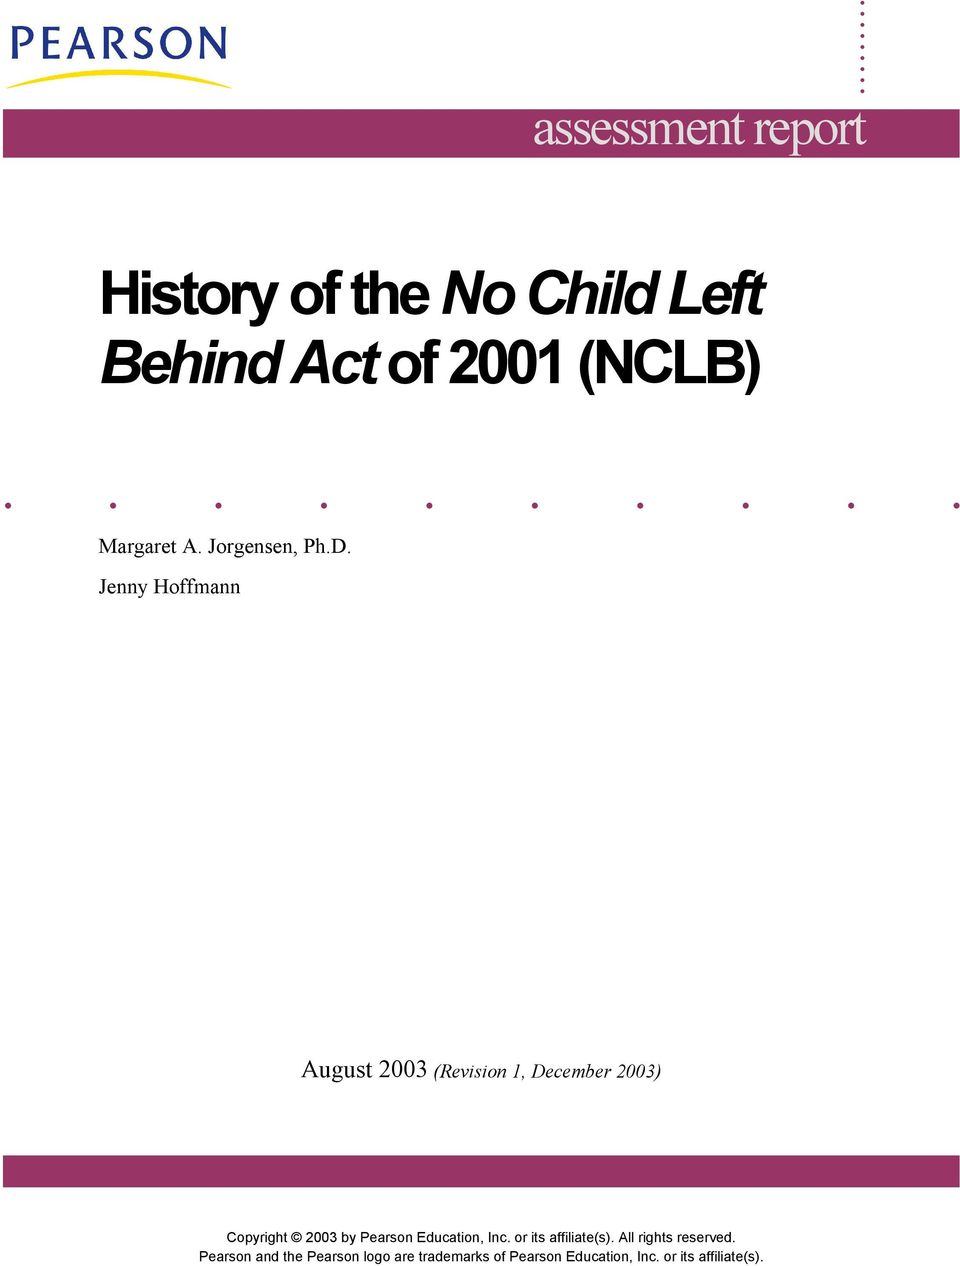 no child left behind essay essay No child left behind essay 966 words | 4 pages no child left behind as students in a structure & philosophy class, one of the main components has been to introduce and familiarize us with the no child left behind act.